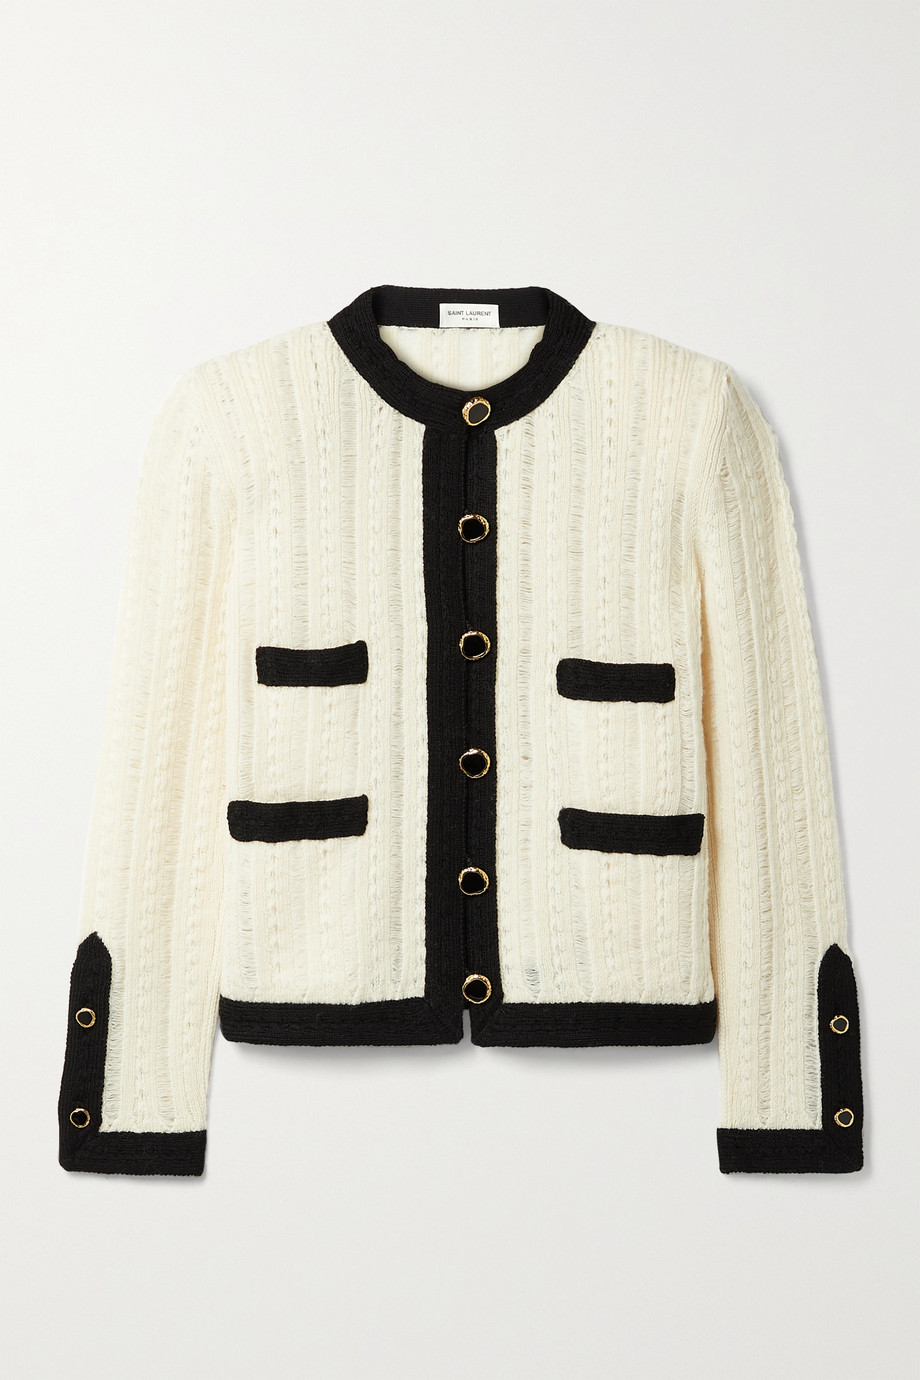 SAINT LAURENT Two-tone ribbed wool jacket